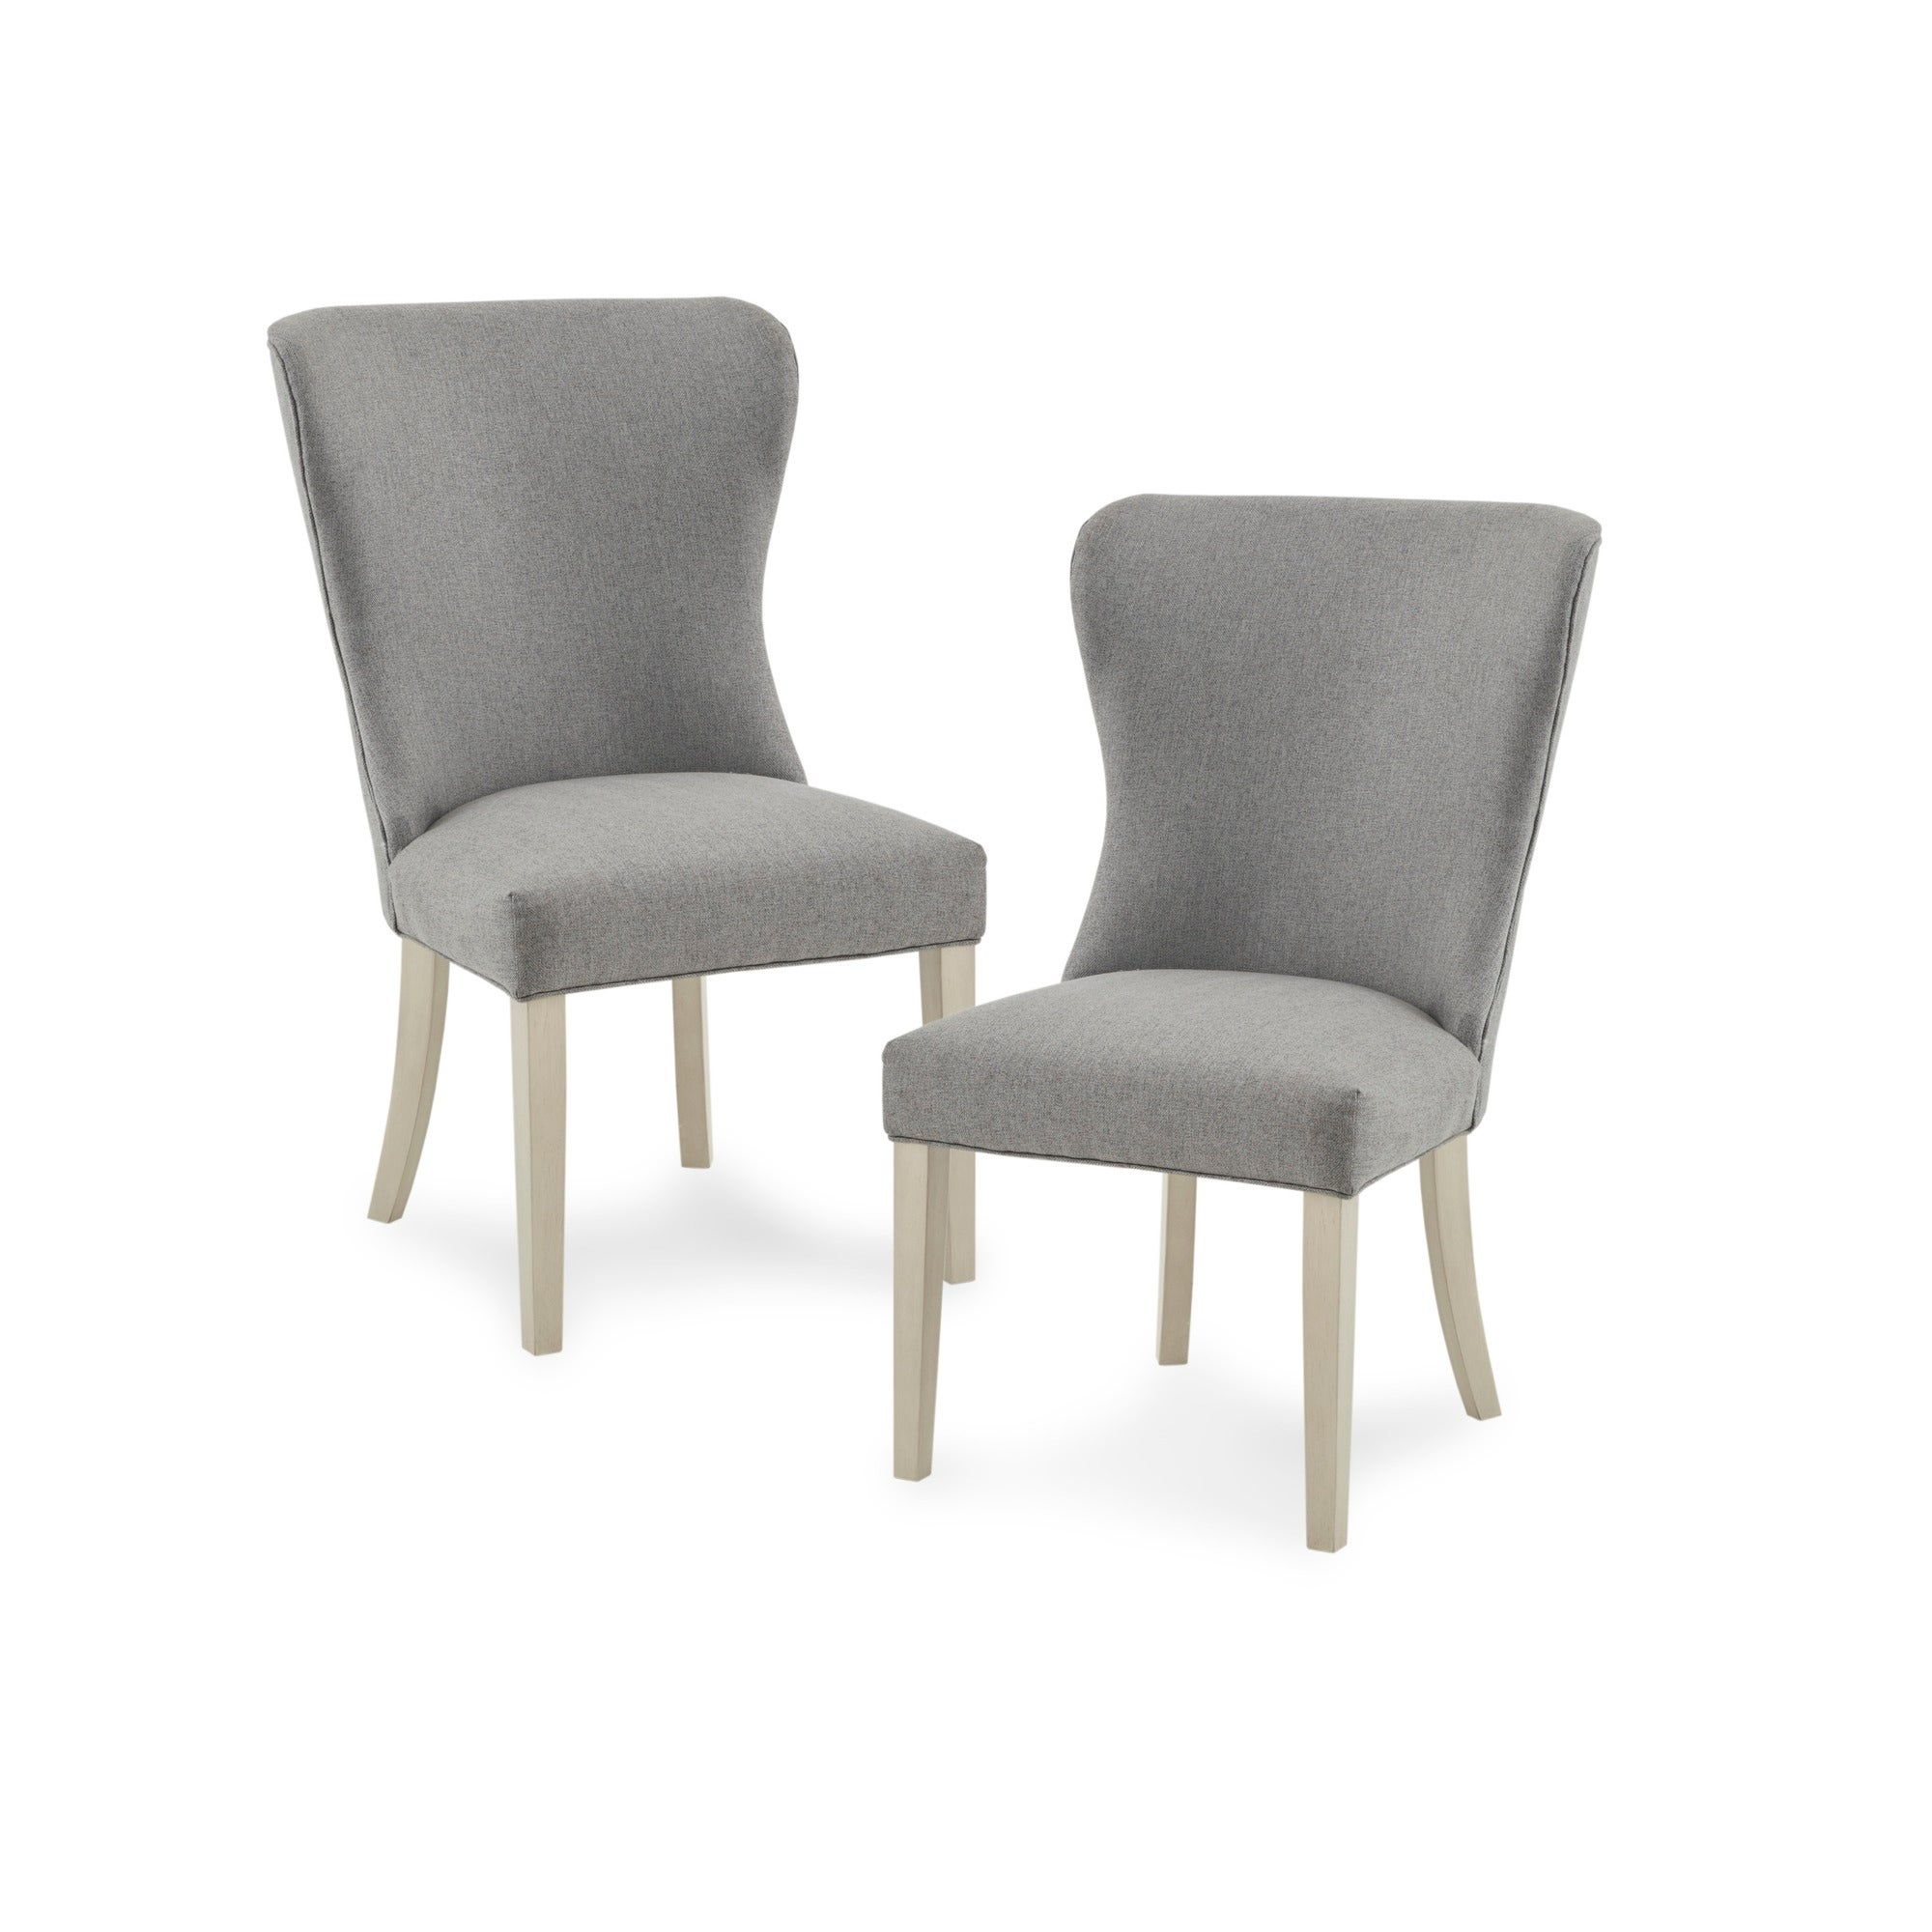 Madison Park Signature Helena Dining Side Chair Overstock 15367827